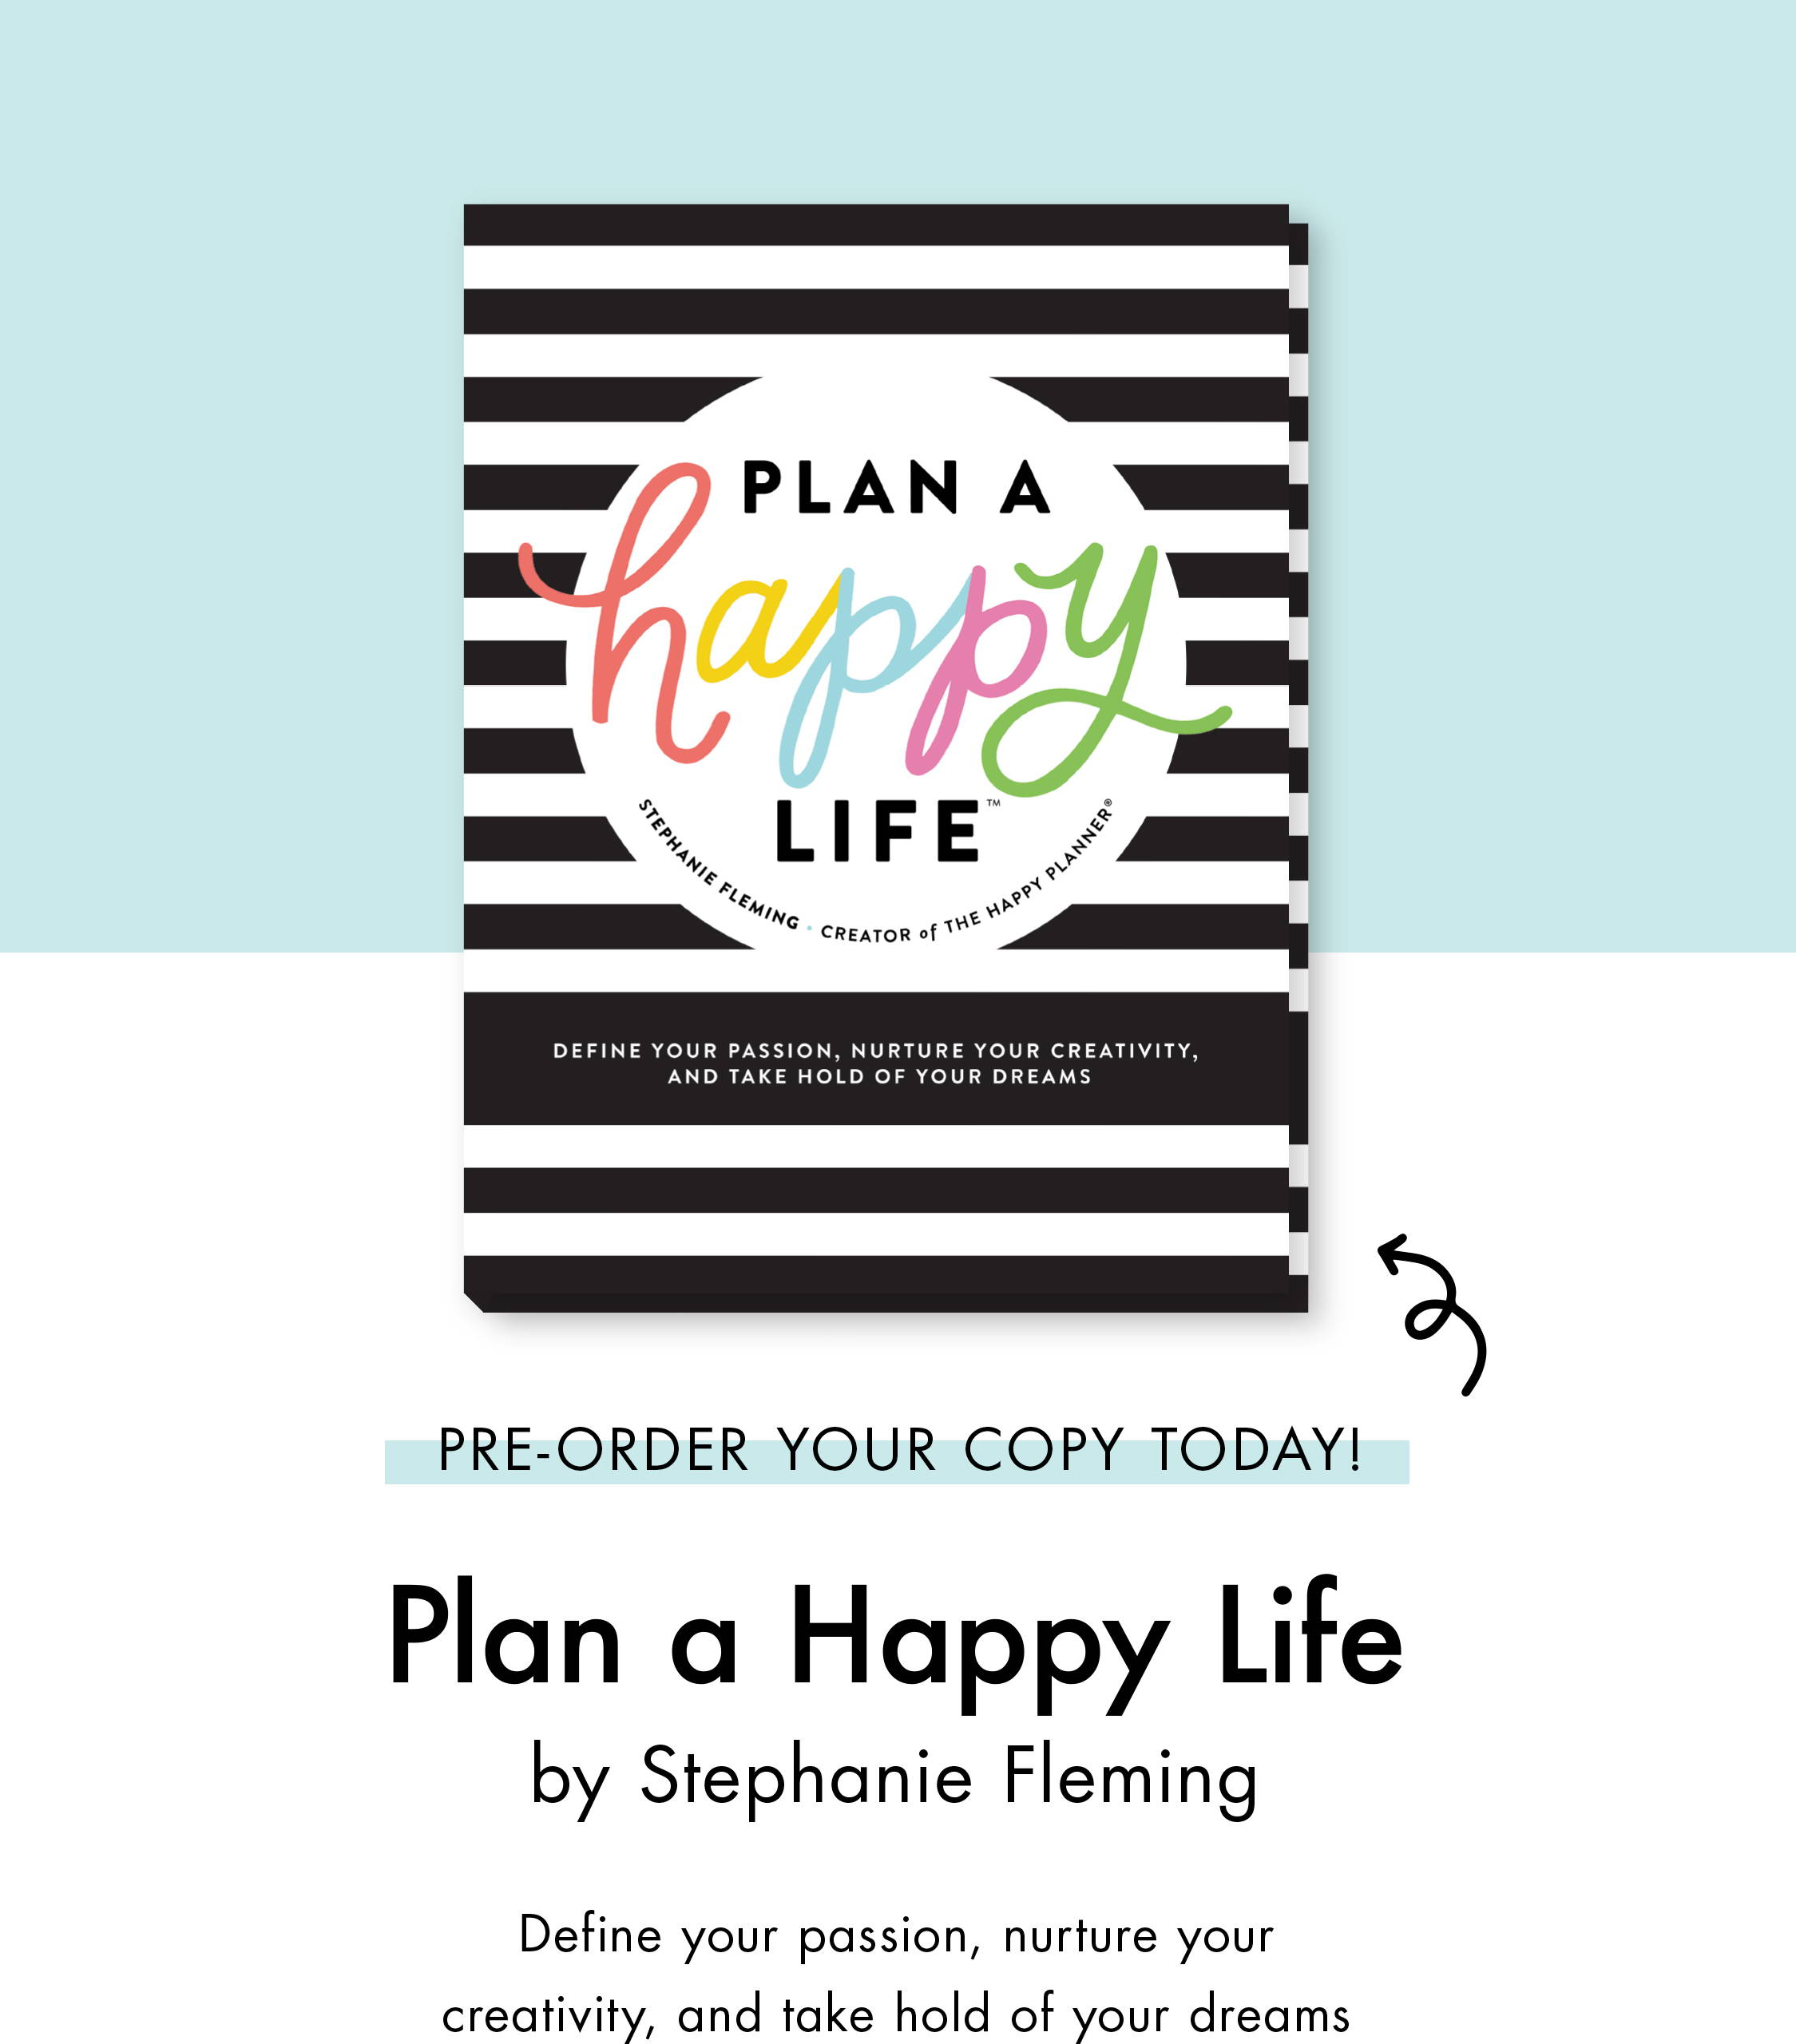 Pre-order Your Copy Today! Plan a Happy Life by Stephanie Fleming. Define your passion , nurture your creativity, and take hold of your dreams